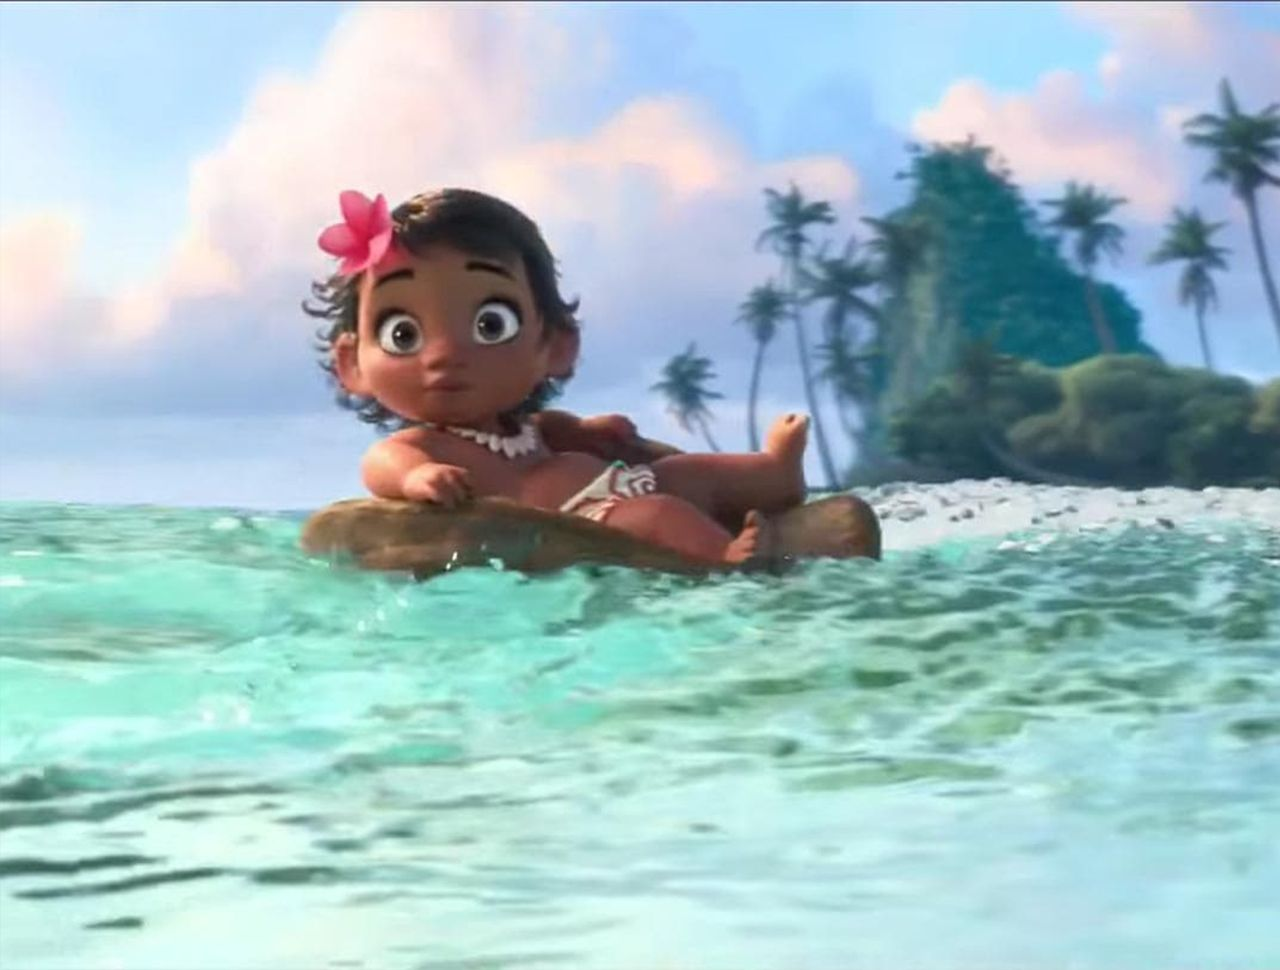 Baby Moana Wallpapers - Top Free Baby